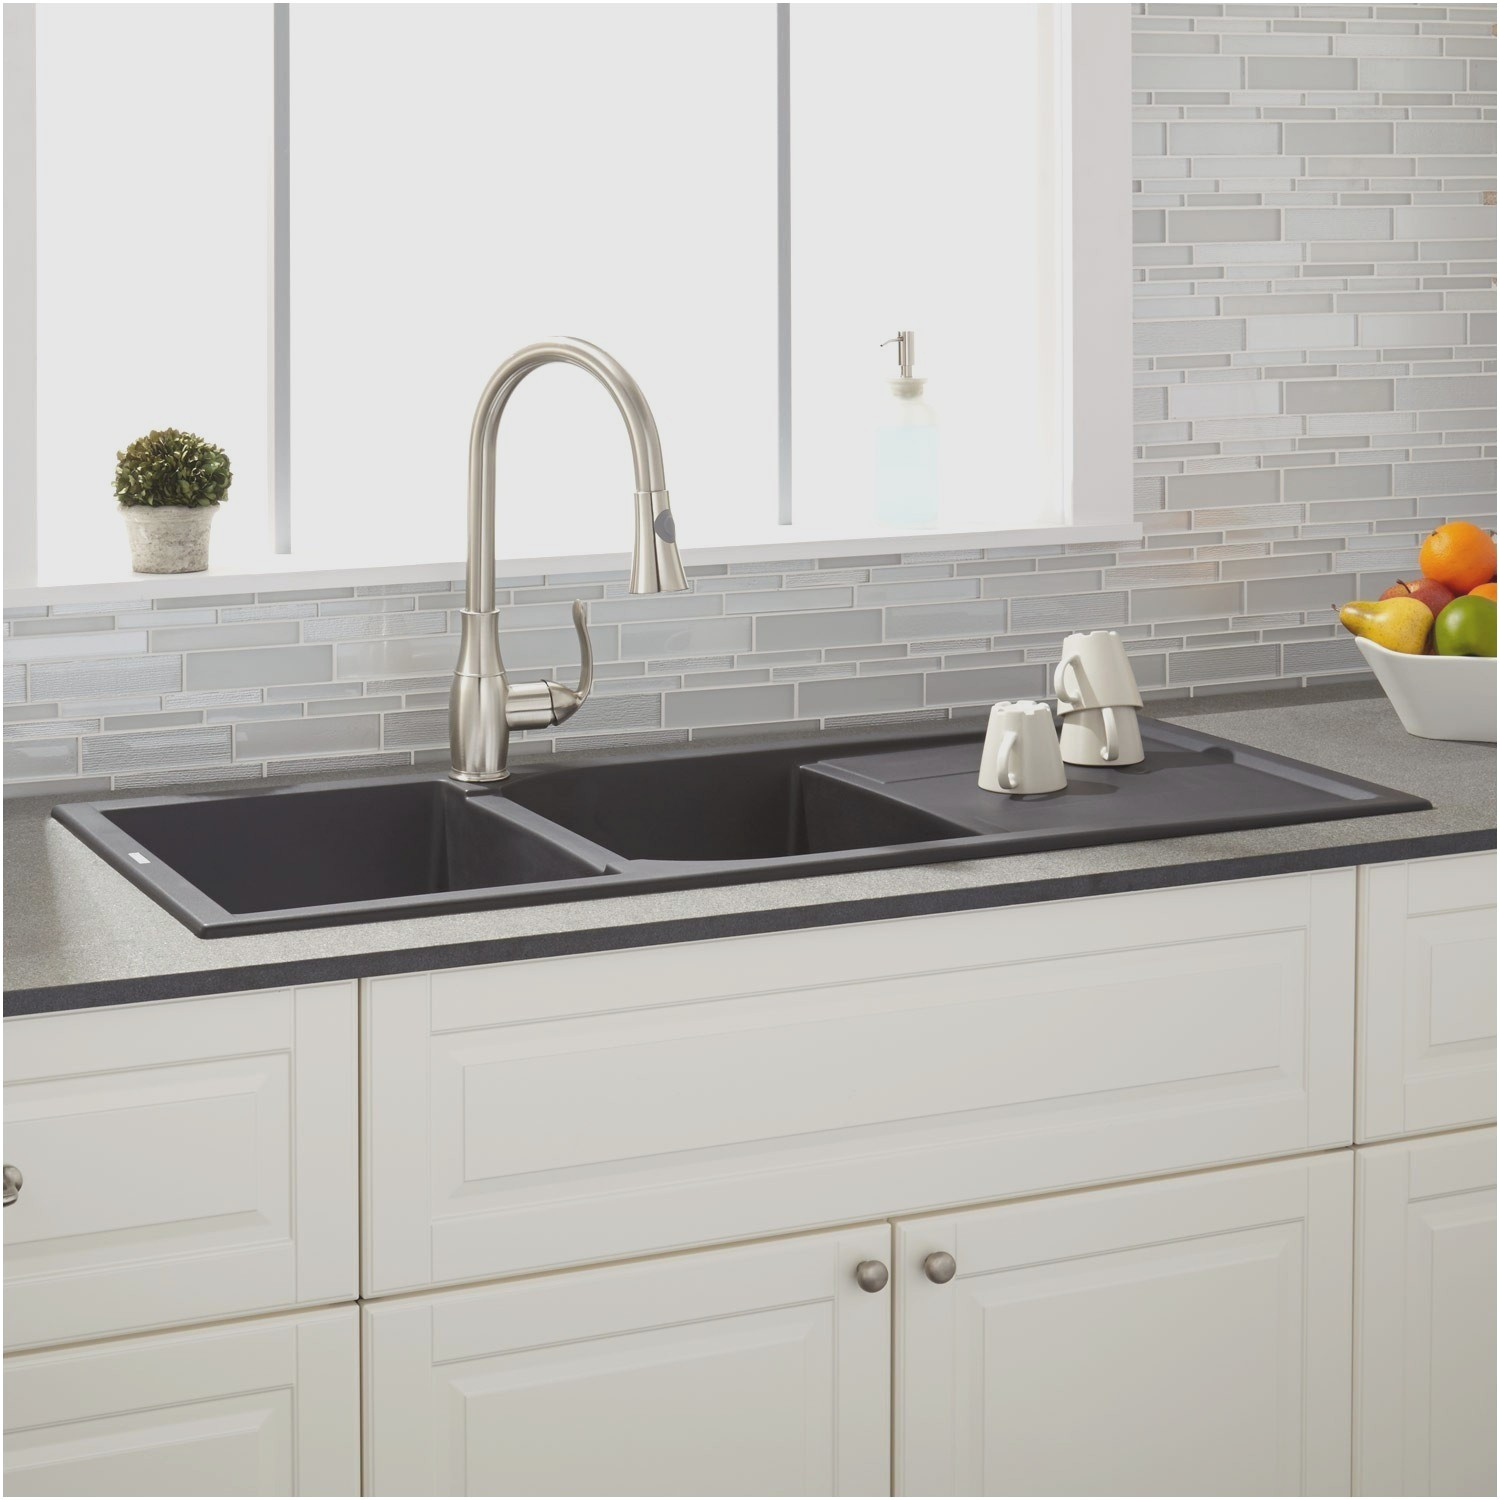 ikea kitchen faucet lovely cute best kitchen faucets reviews kitchen sink bowl fresh h sink